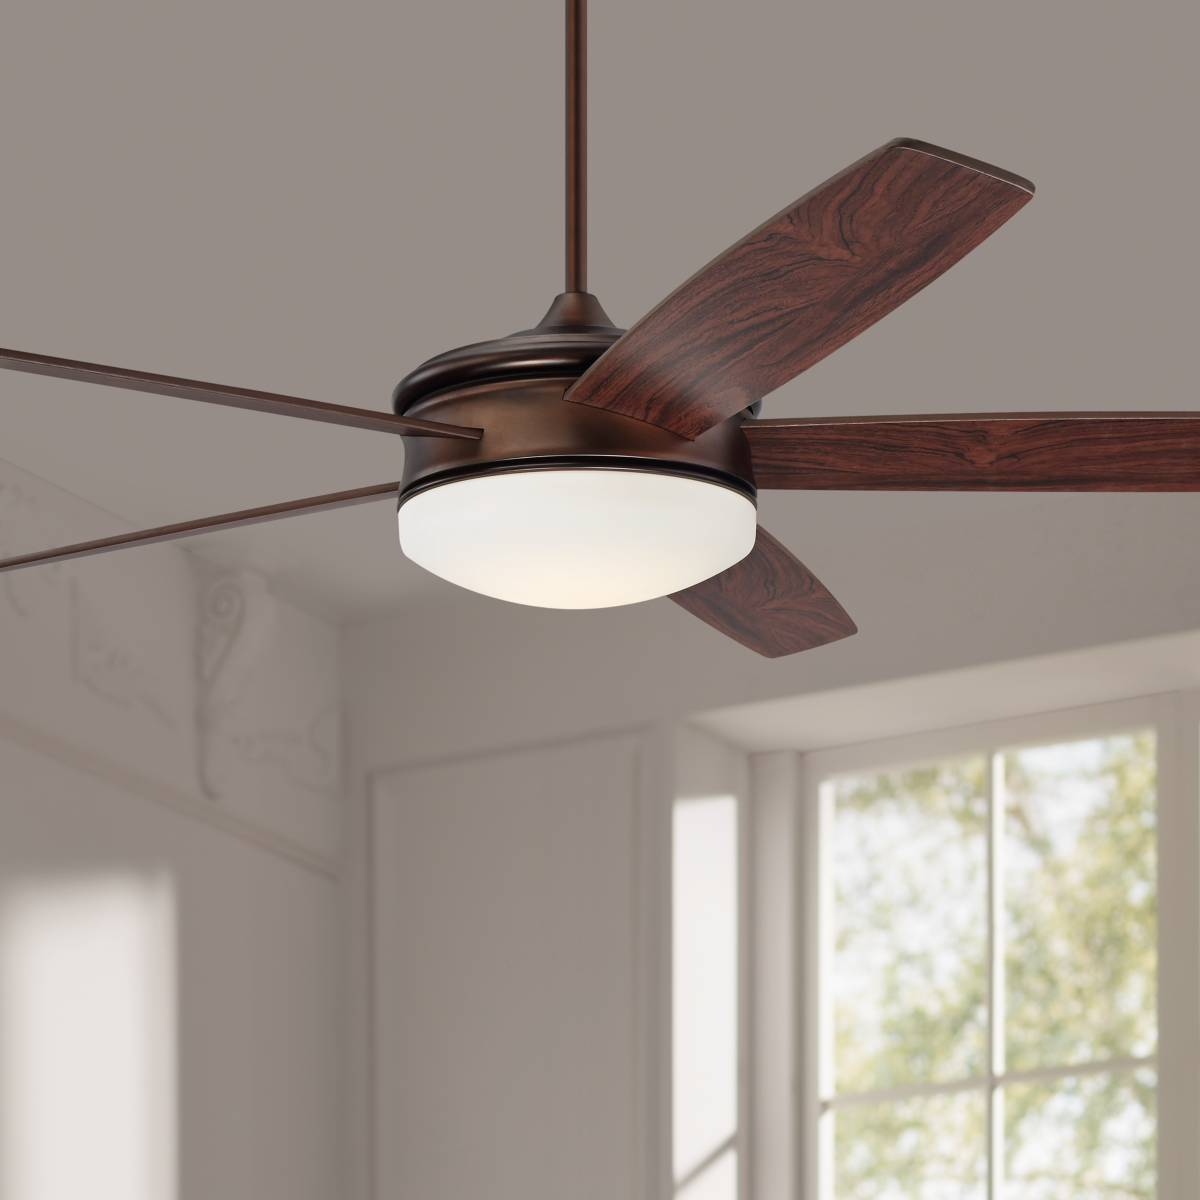 60 In Span Or Larger Traditional Ceiling Fan With Light